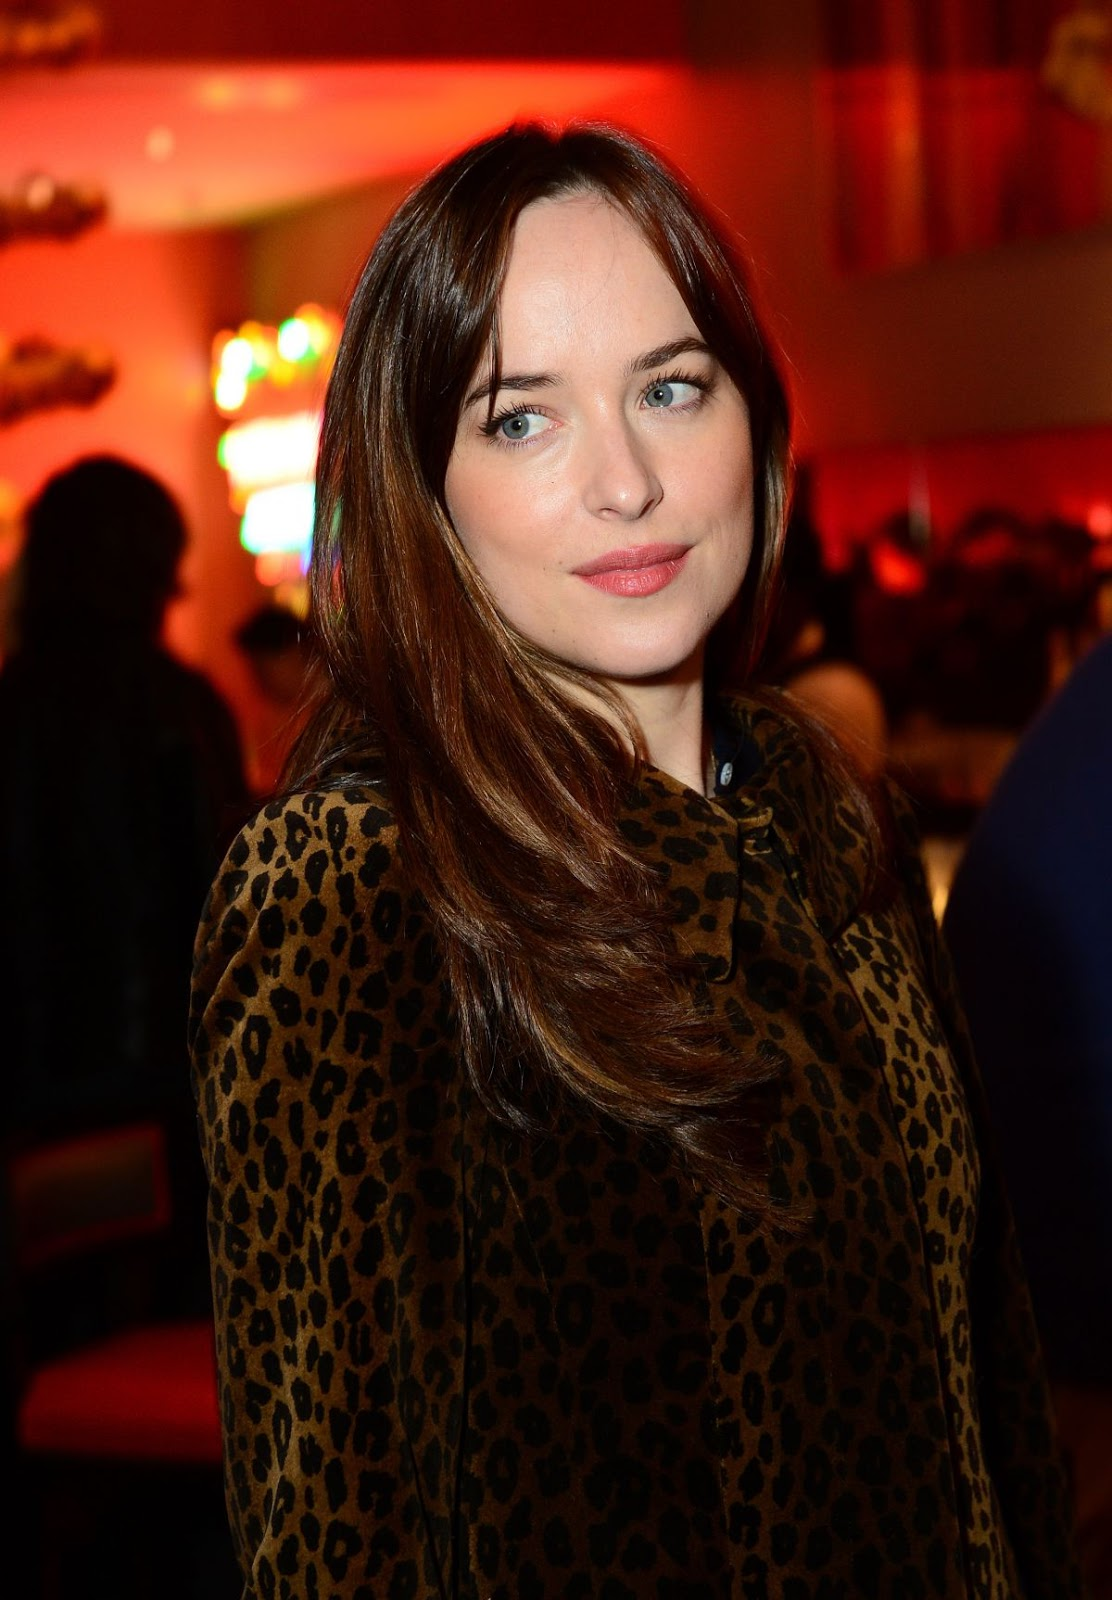 Dakota Johnson at Bigger Splash Photocall in London